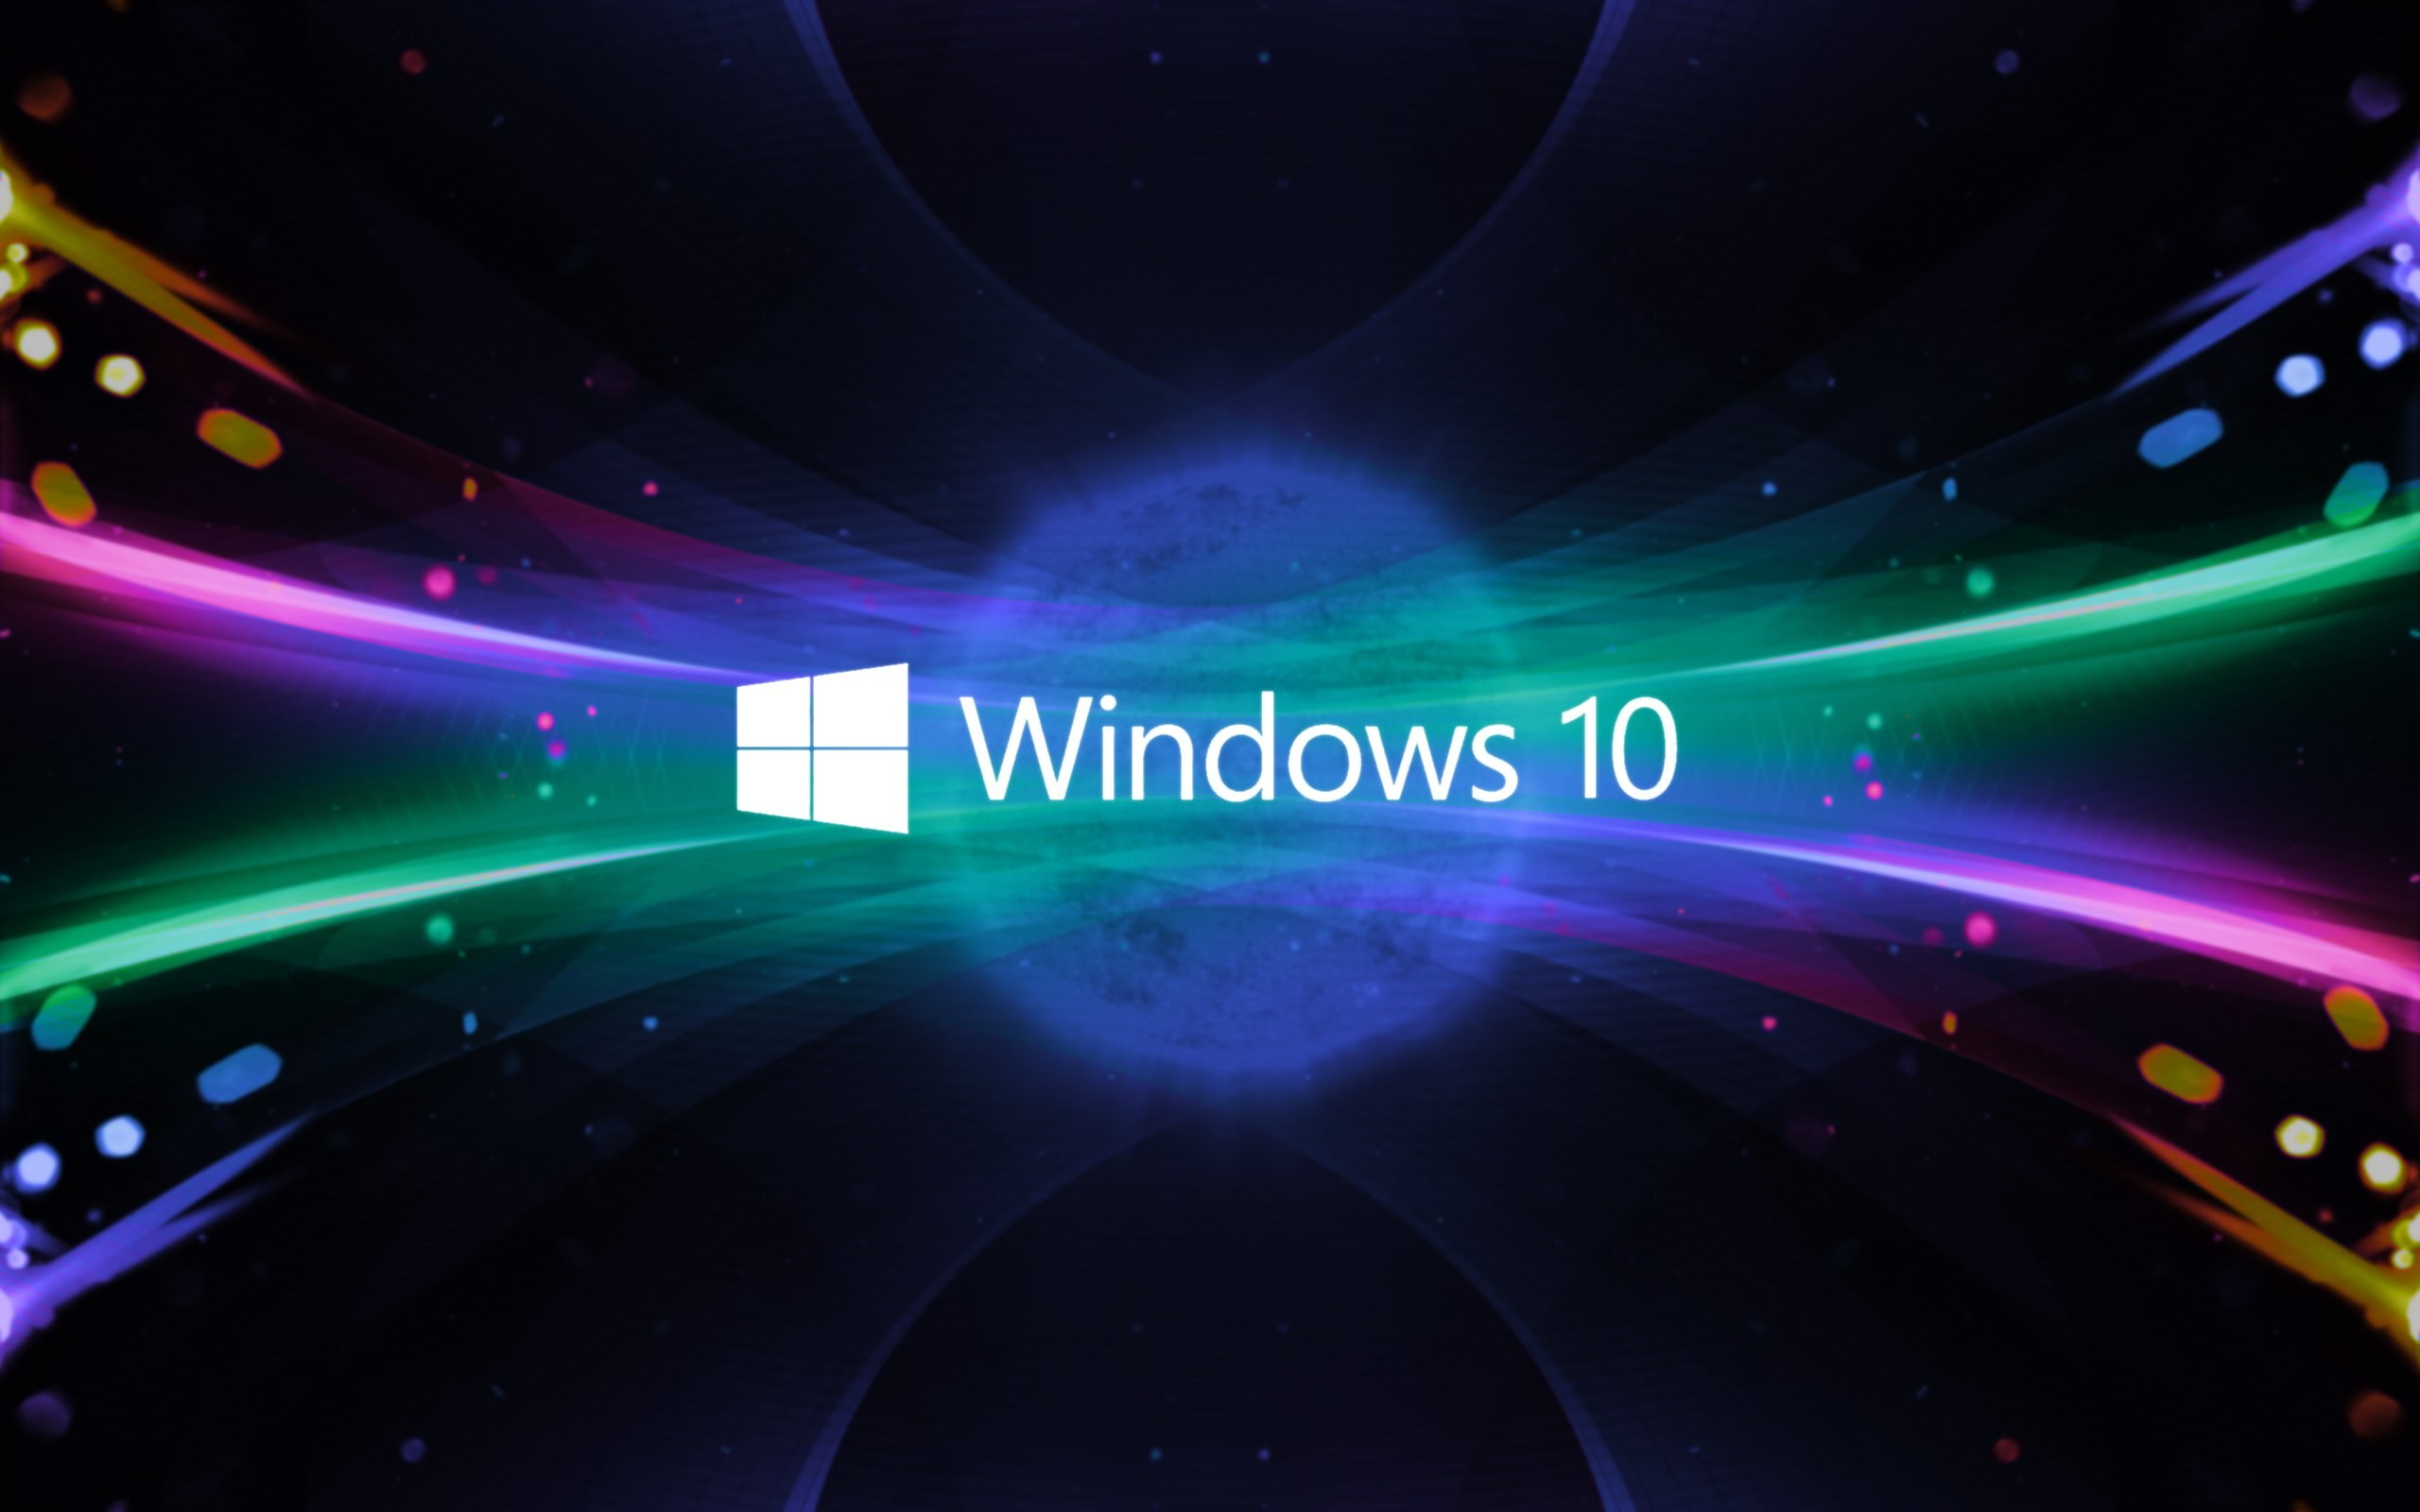 2560x1600 Live Wallpaper HD 11 For Windows 10 Is Free This